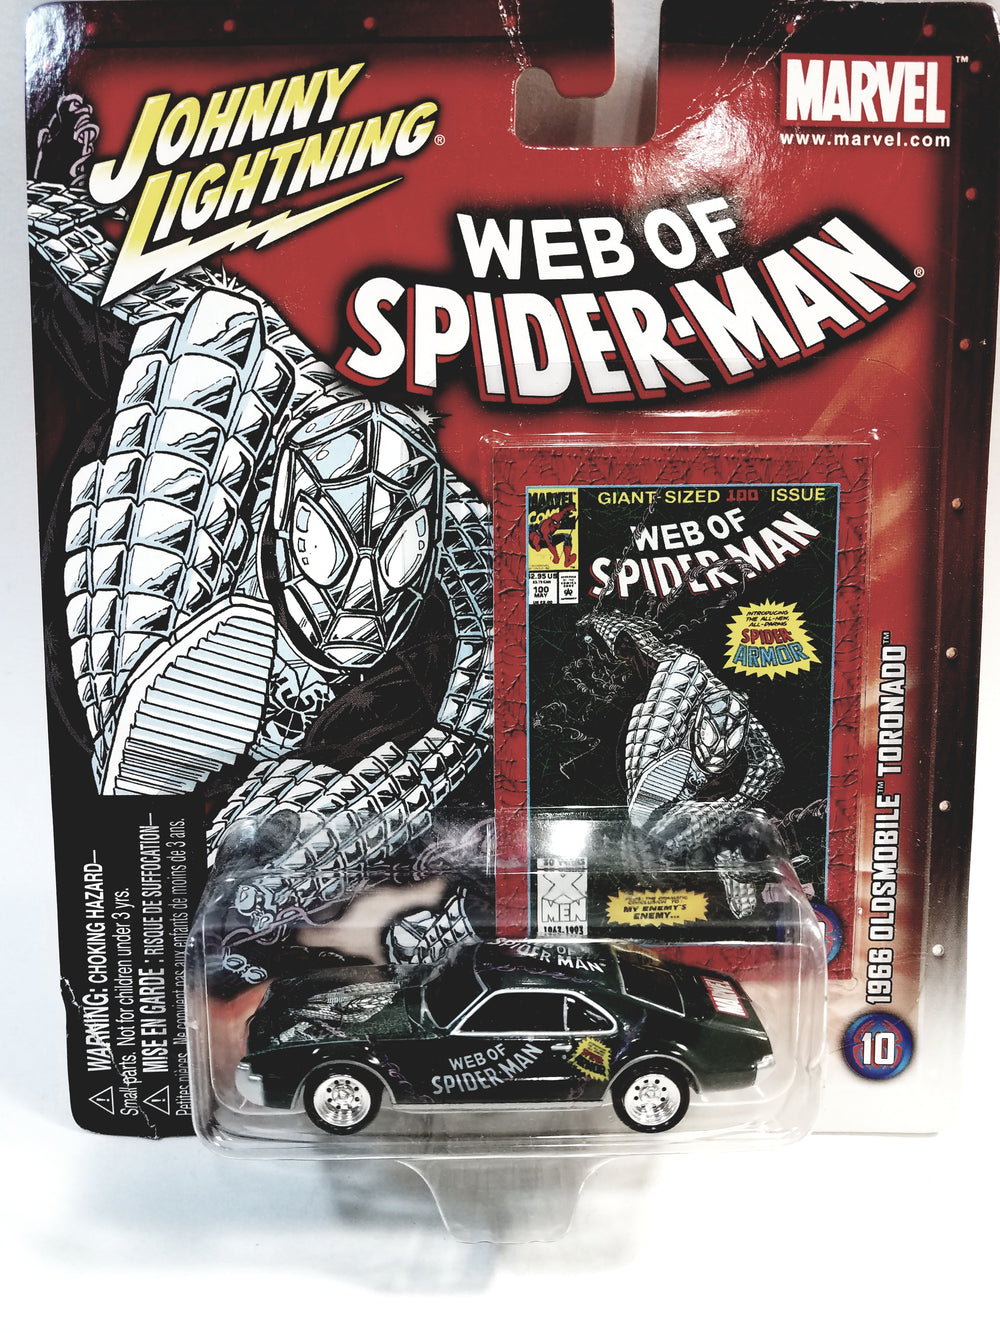 Johnny Lightning Web Of Spiderman Green 1966 Oldsmobile Tornado Collectors Edition 1/64 Scale Diecast Car